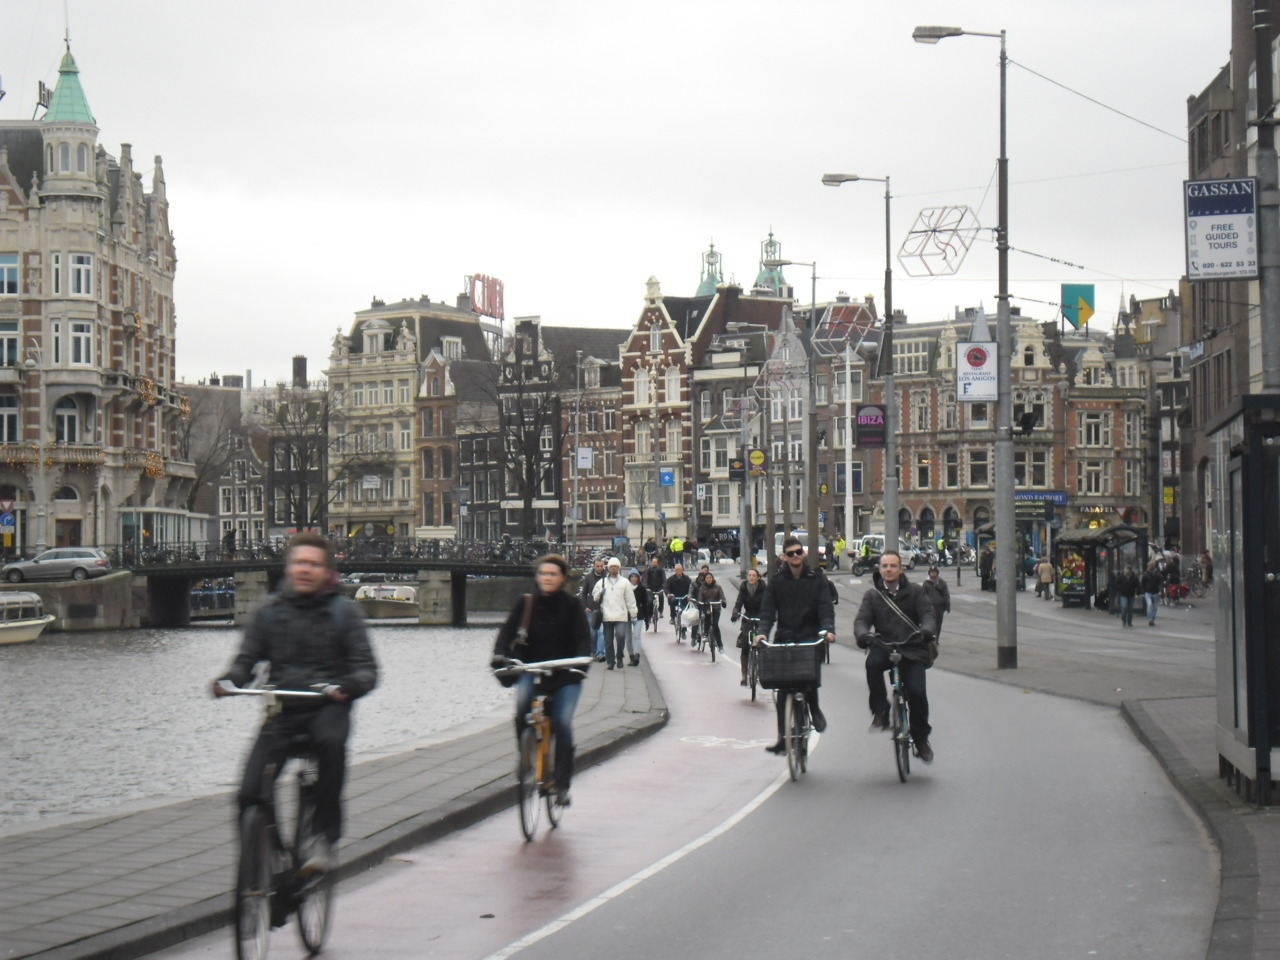 Amsterdam, Netherlands. Possibly the most Dutch photo I have ever taken in my life. 8 December 2011.